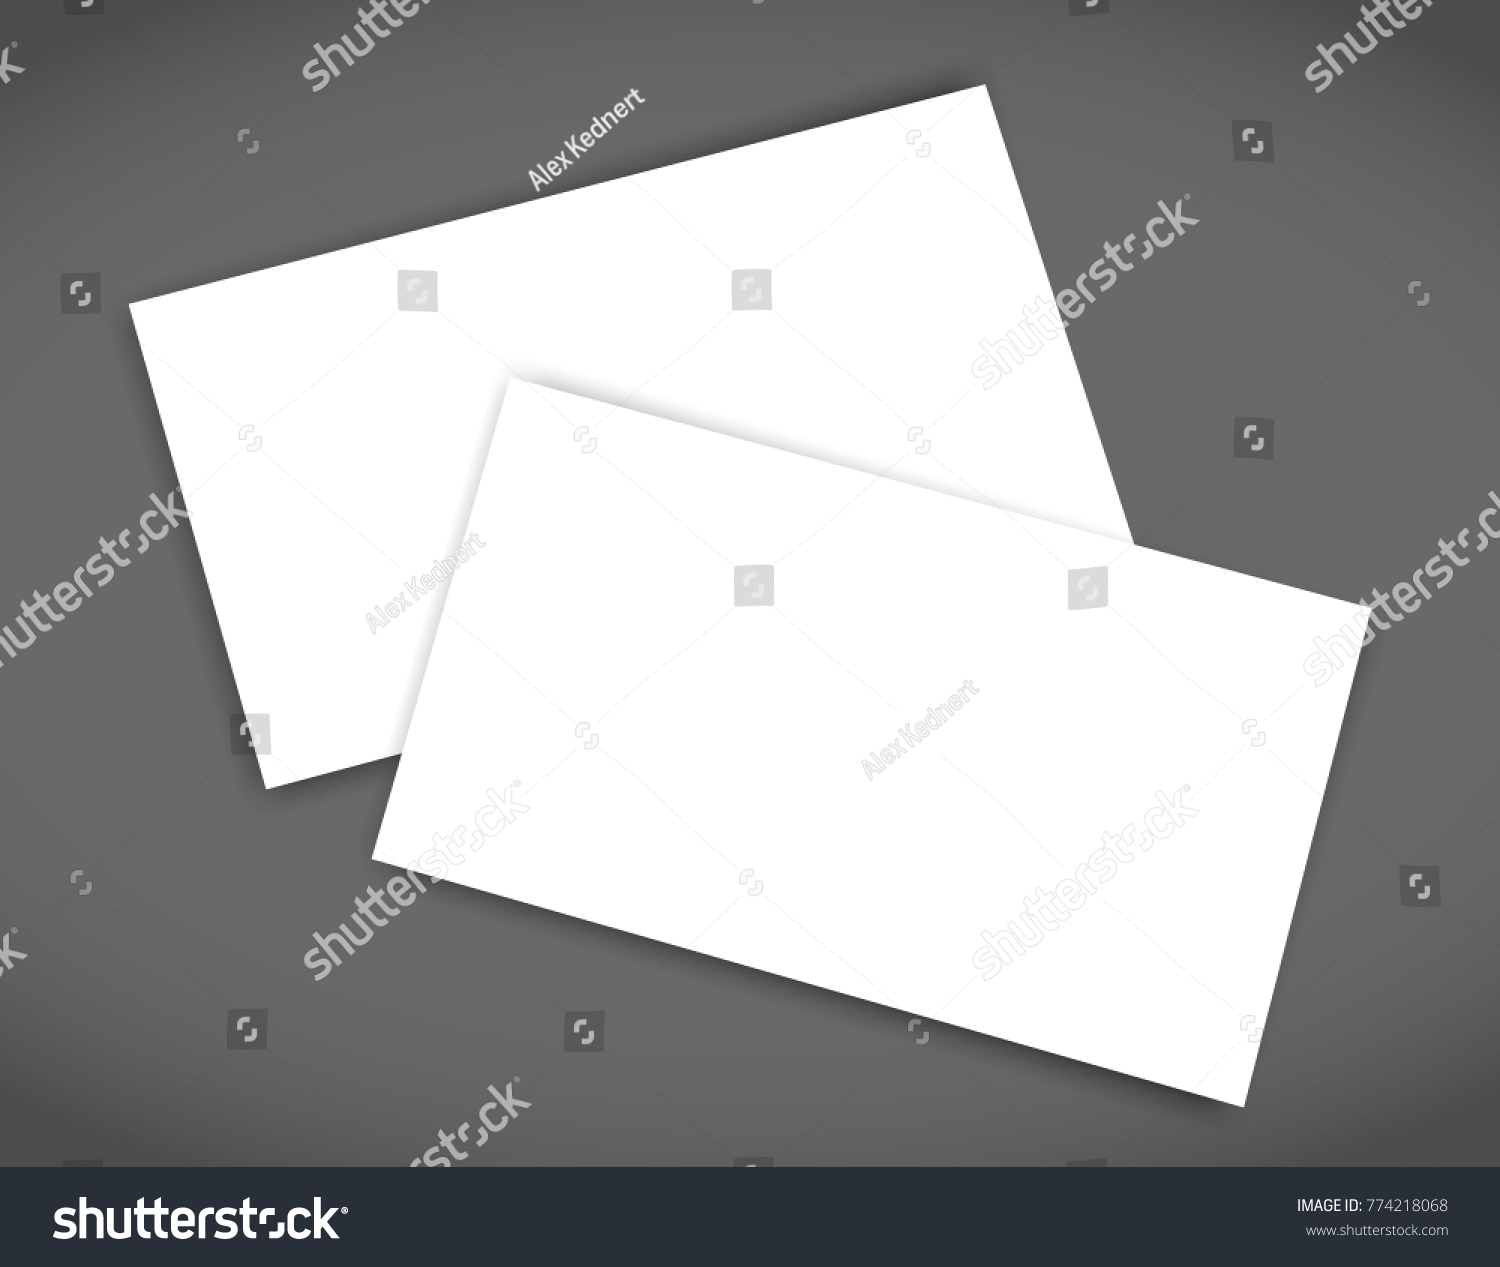 Business Card Blank Shadow Mockup Cover Stock Vector 774218068 ...